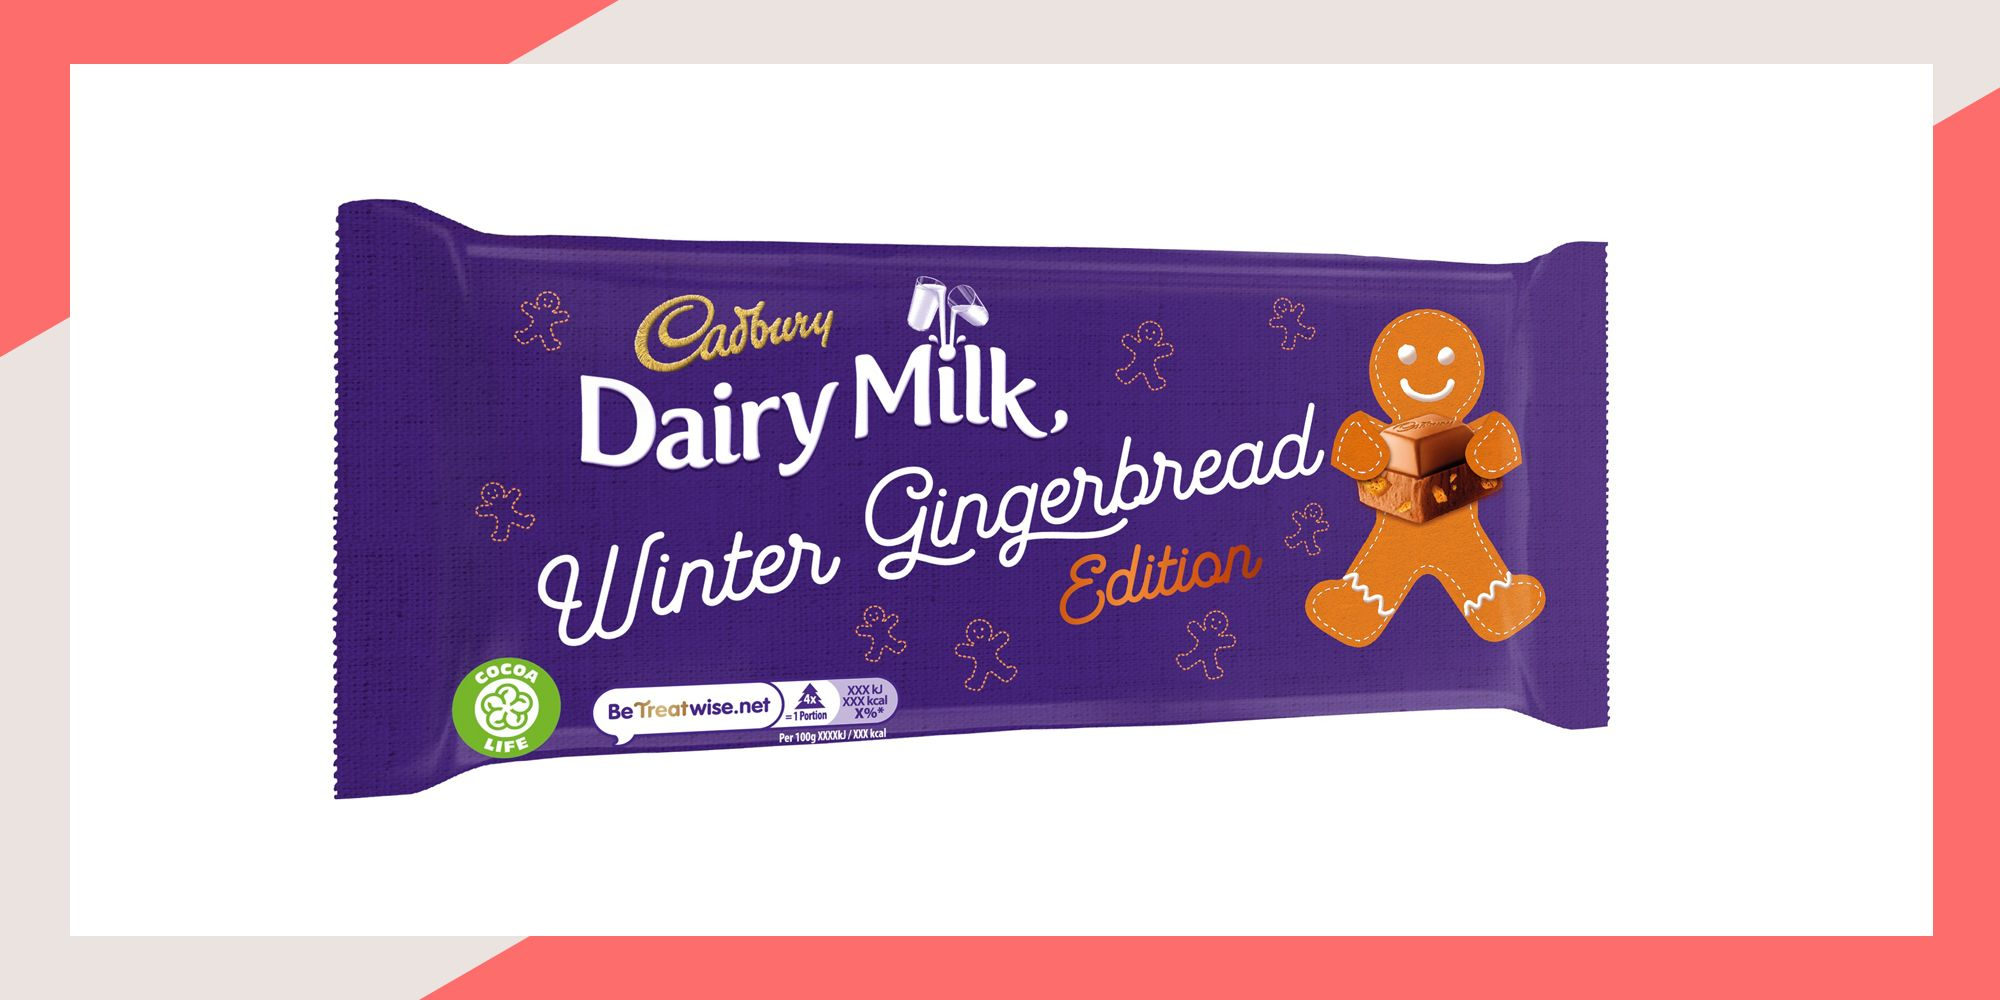 Cadbury Dairy Milk launches new gingerbread flavour for Christmas